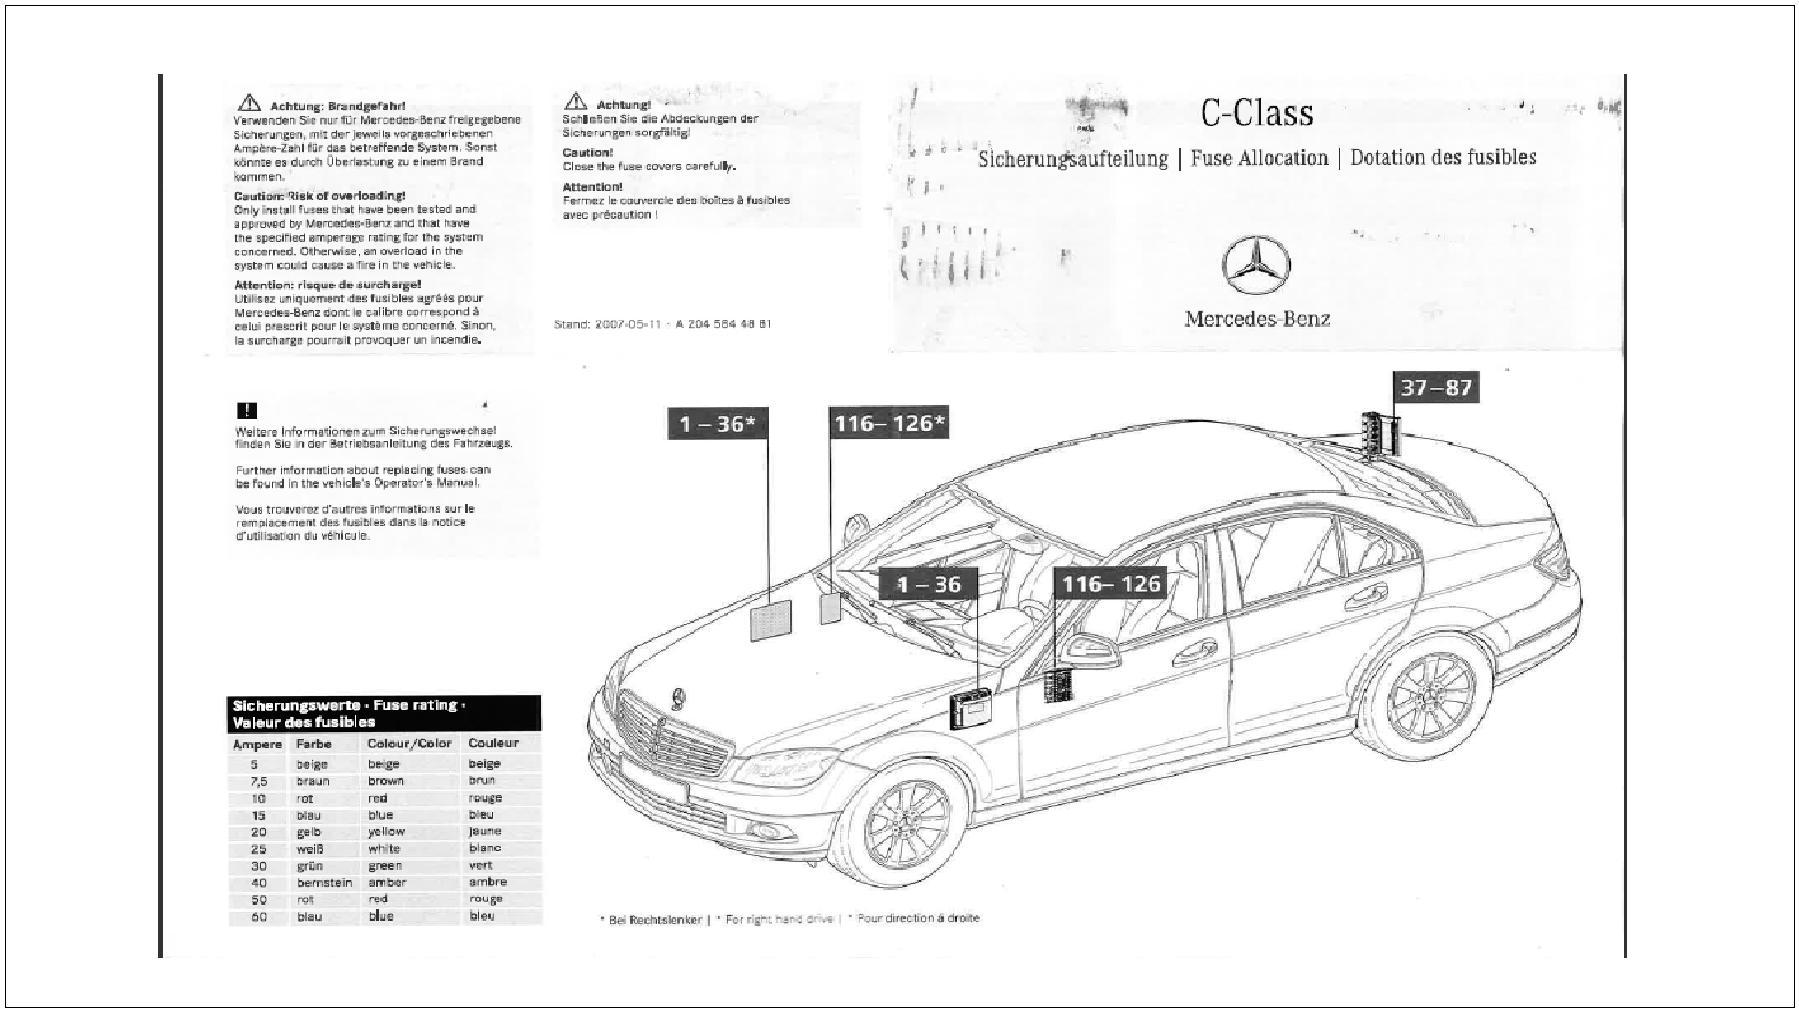 mercedes benz  class  fuse diagrams  commonly